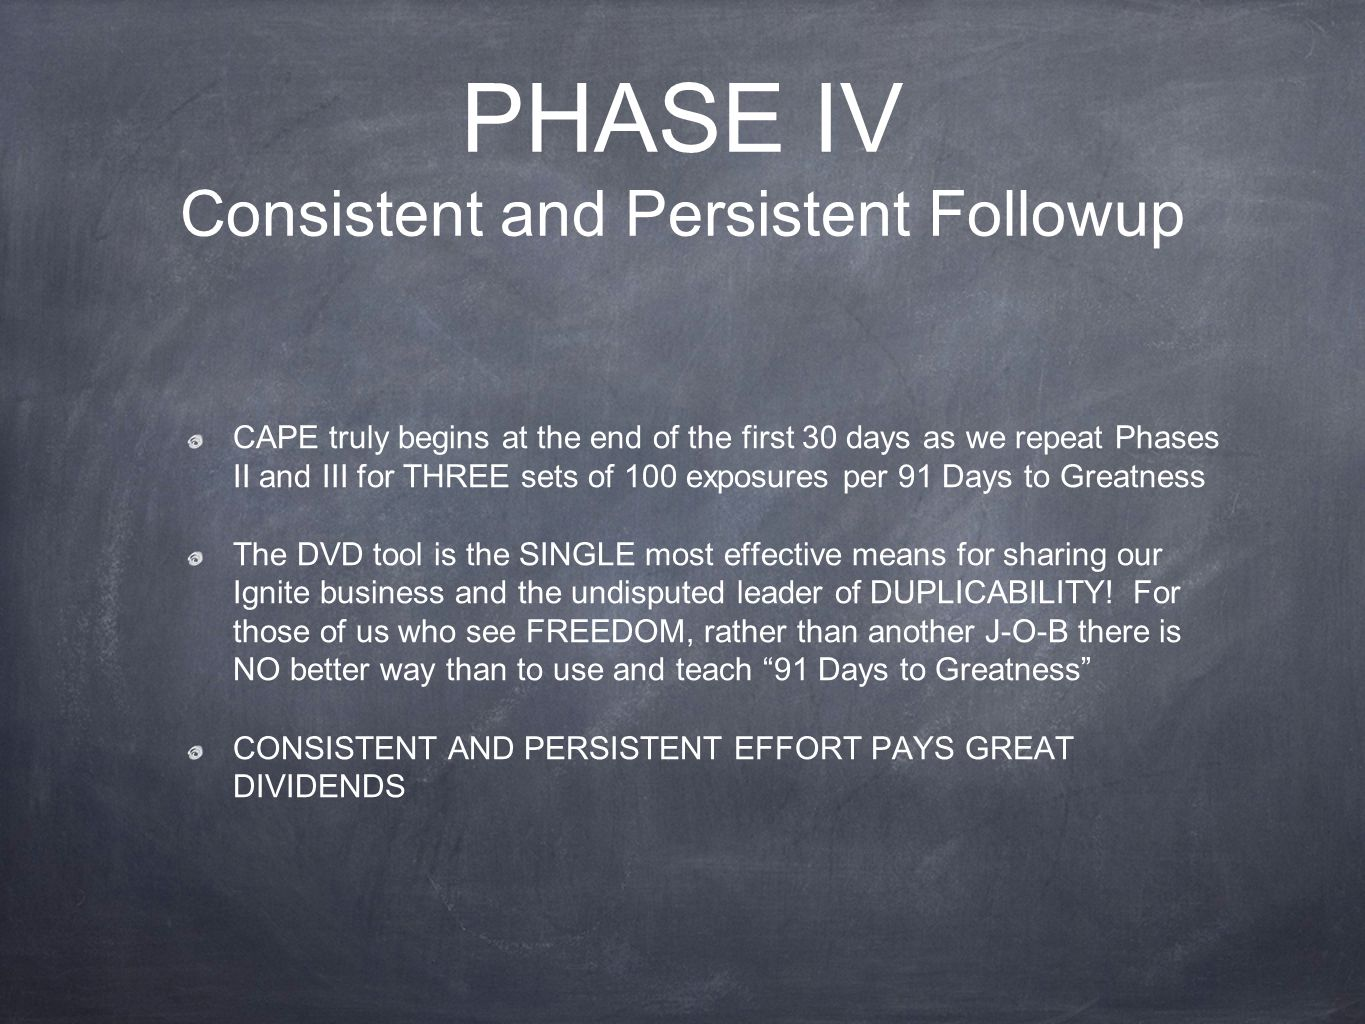 PHASE IV Consistent and Persistent Followup